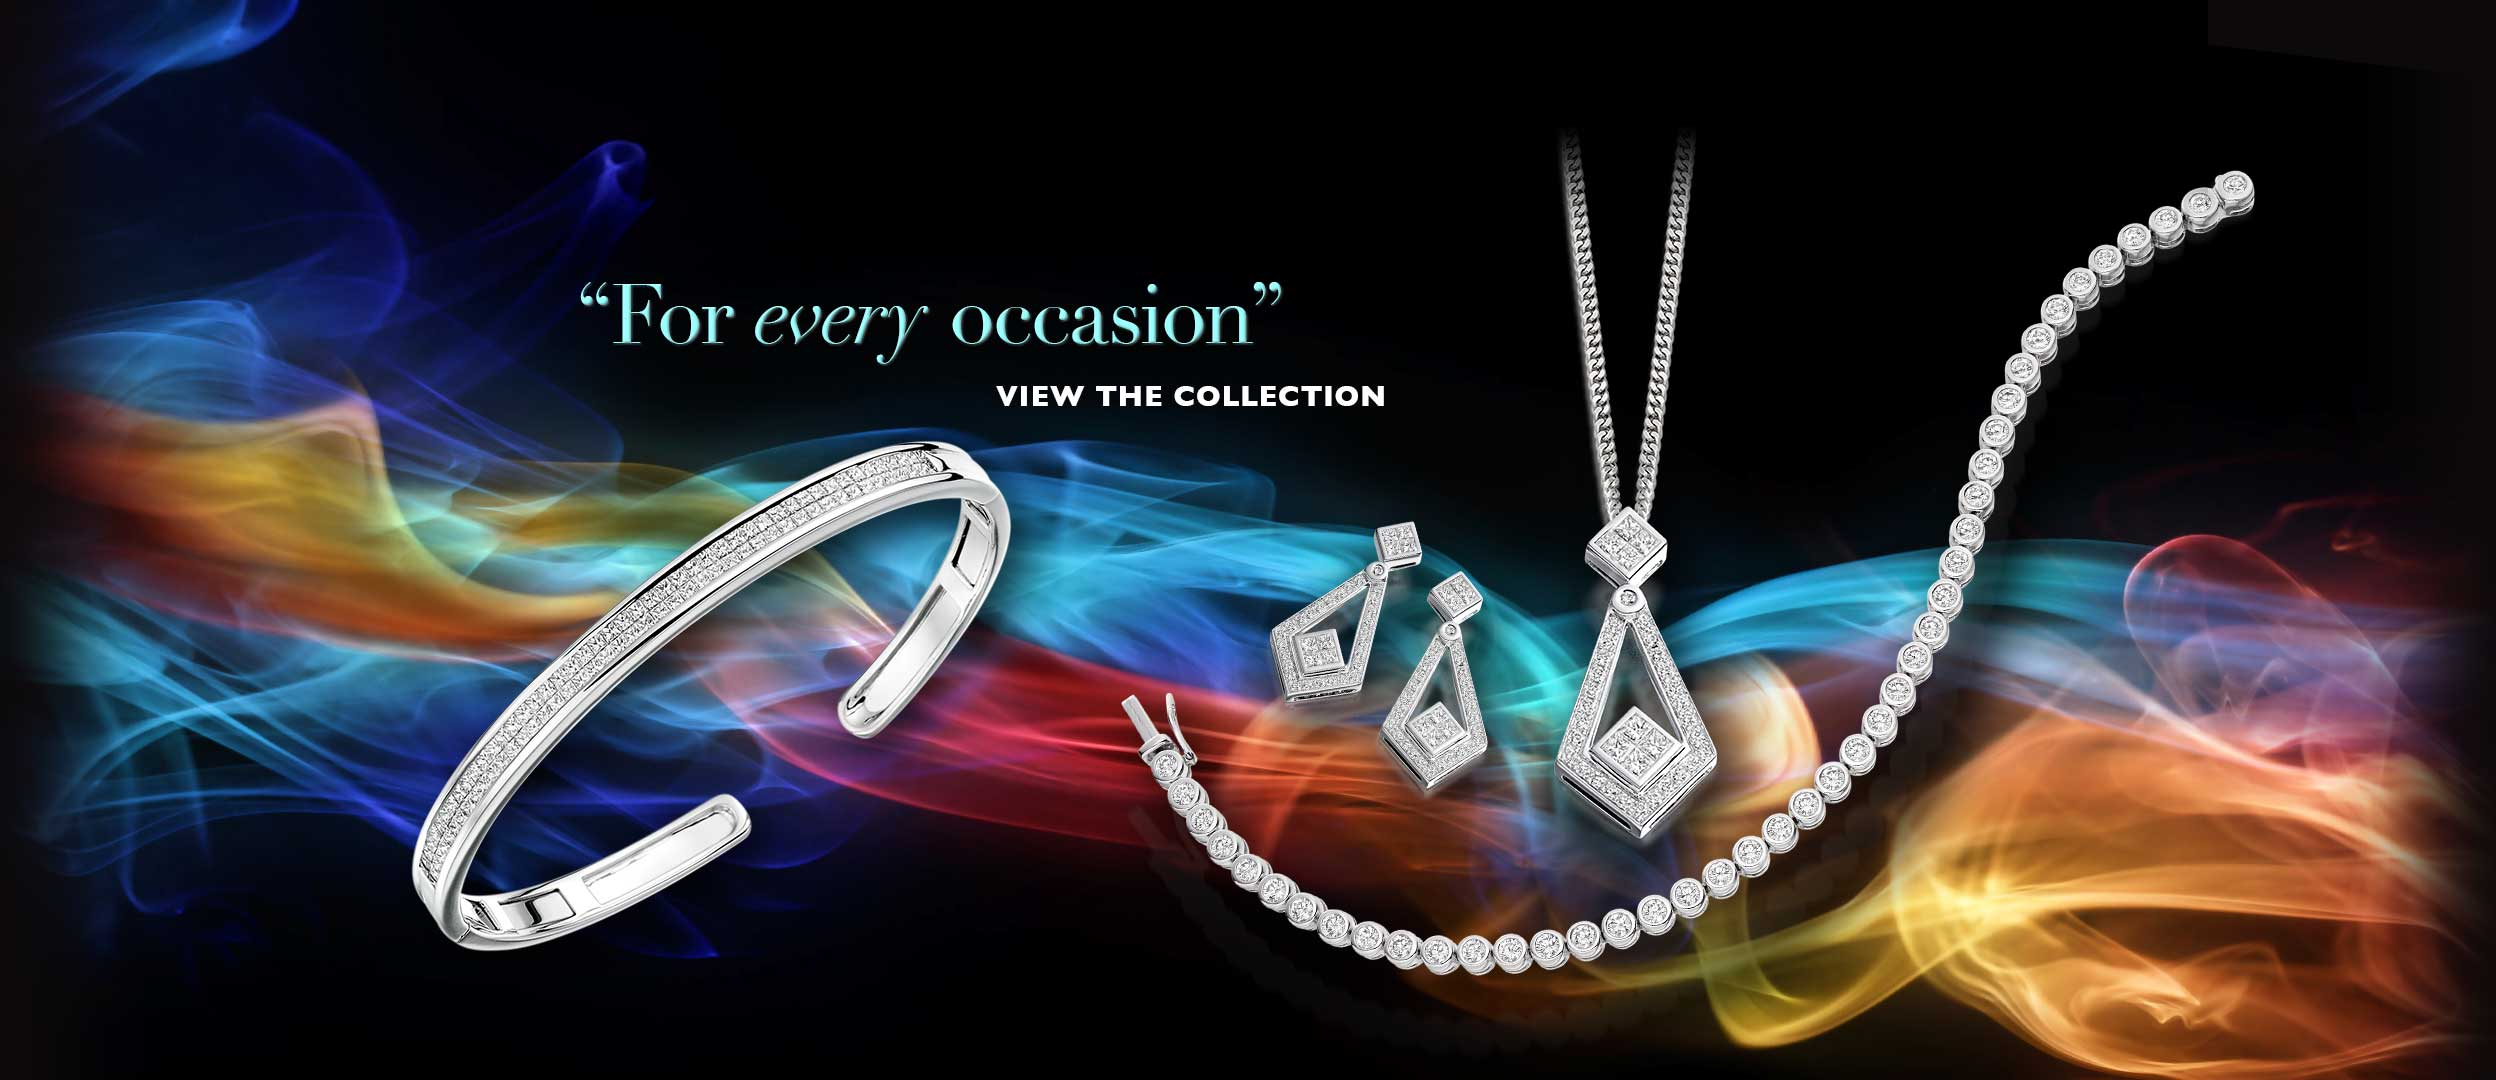 Jewellery, Pendants, Bracelets, Earrings, Cuffs and Bangles